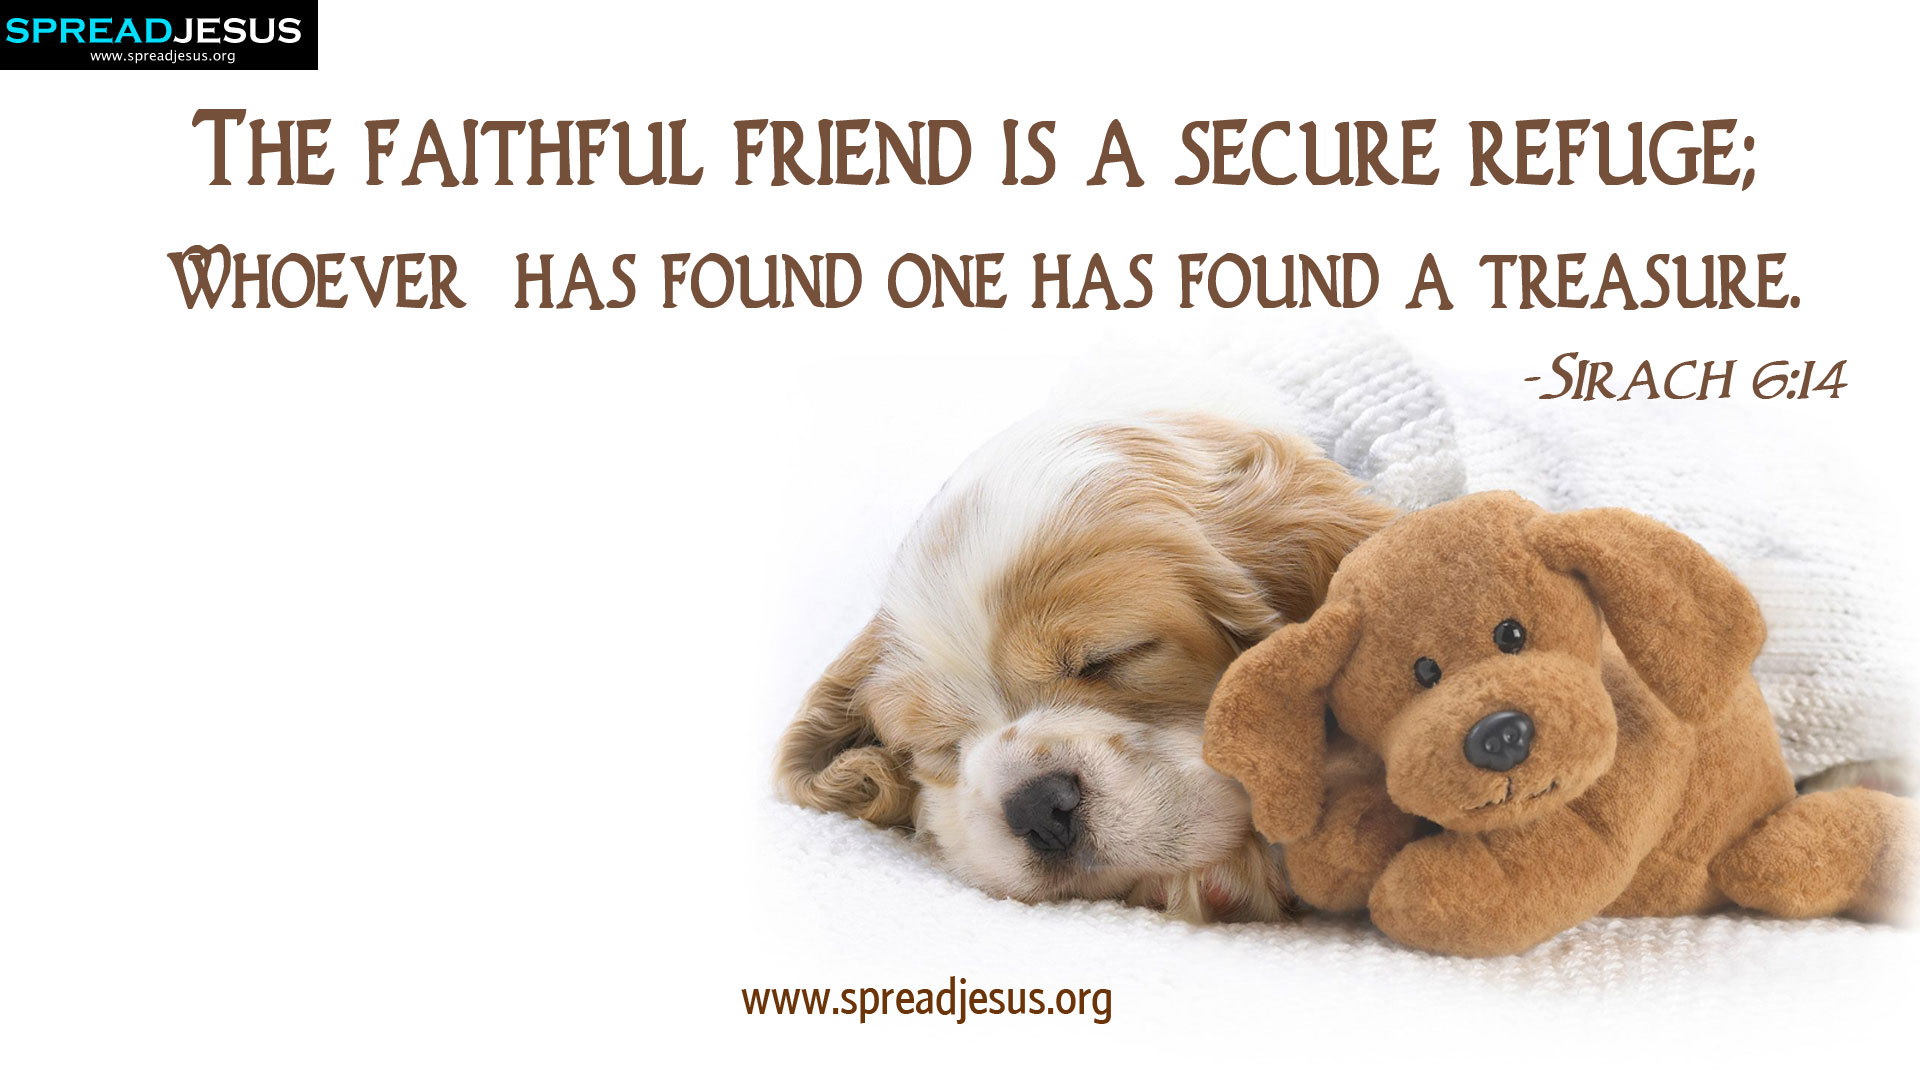 CHRISTIAN HD WALLPAPERS: HOLY BIBLE QUOTES : Sirach 6:14-The faithful friend is a secure refuge; whoever has found one has found a treasure. -Sirach 6:14